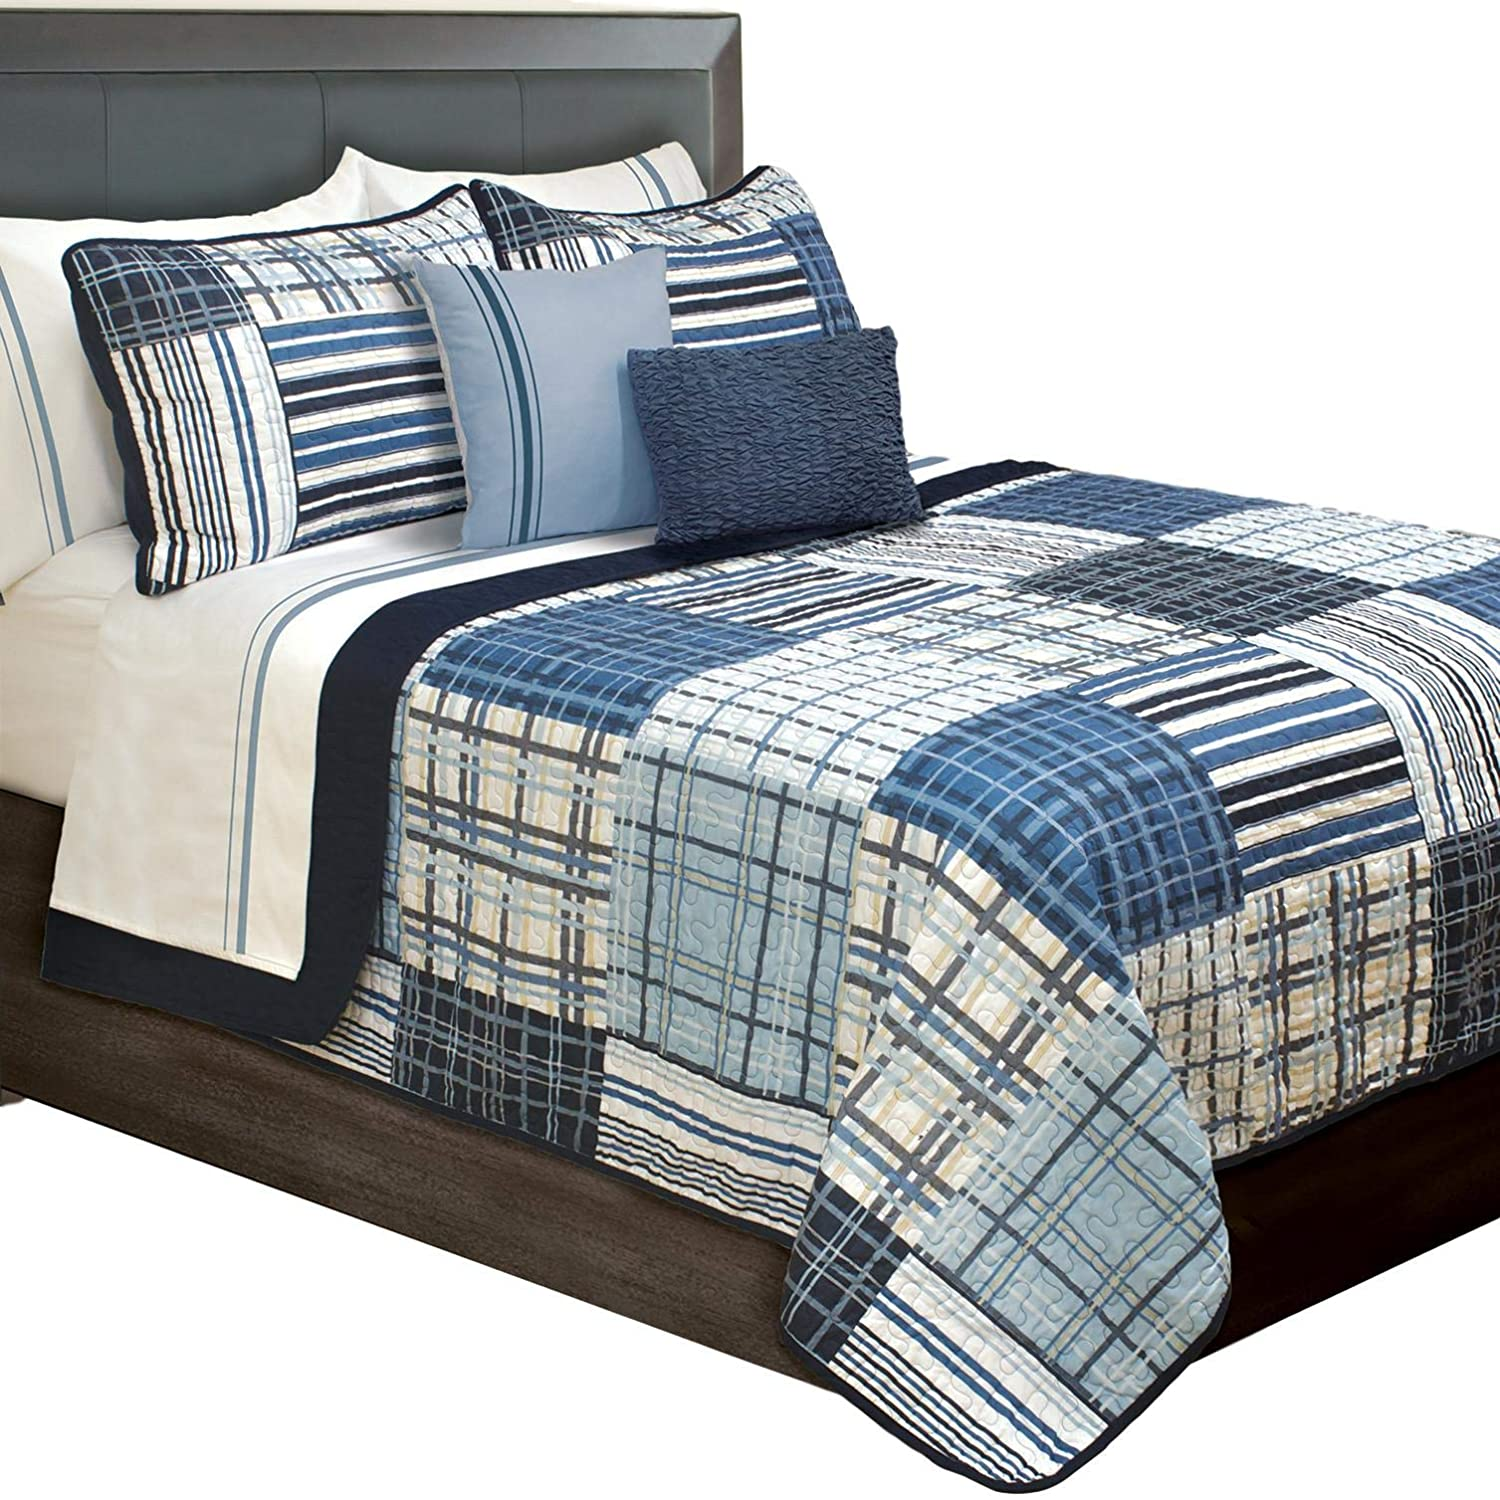 Duncan Plaid Printed Bedding 3 Piece / Bedspread Coverlet Quilt Set (Blue, King) 060971